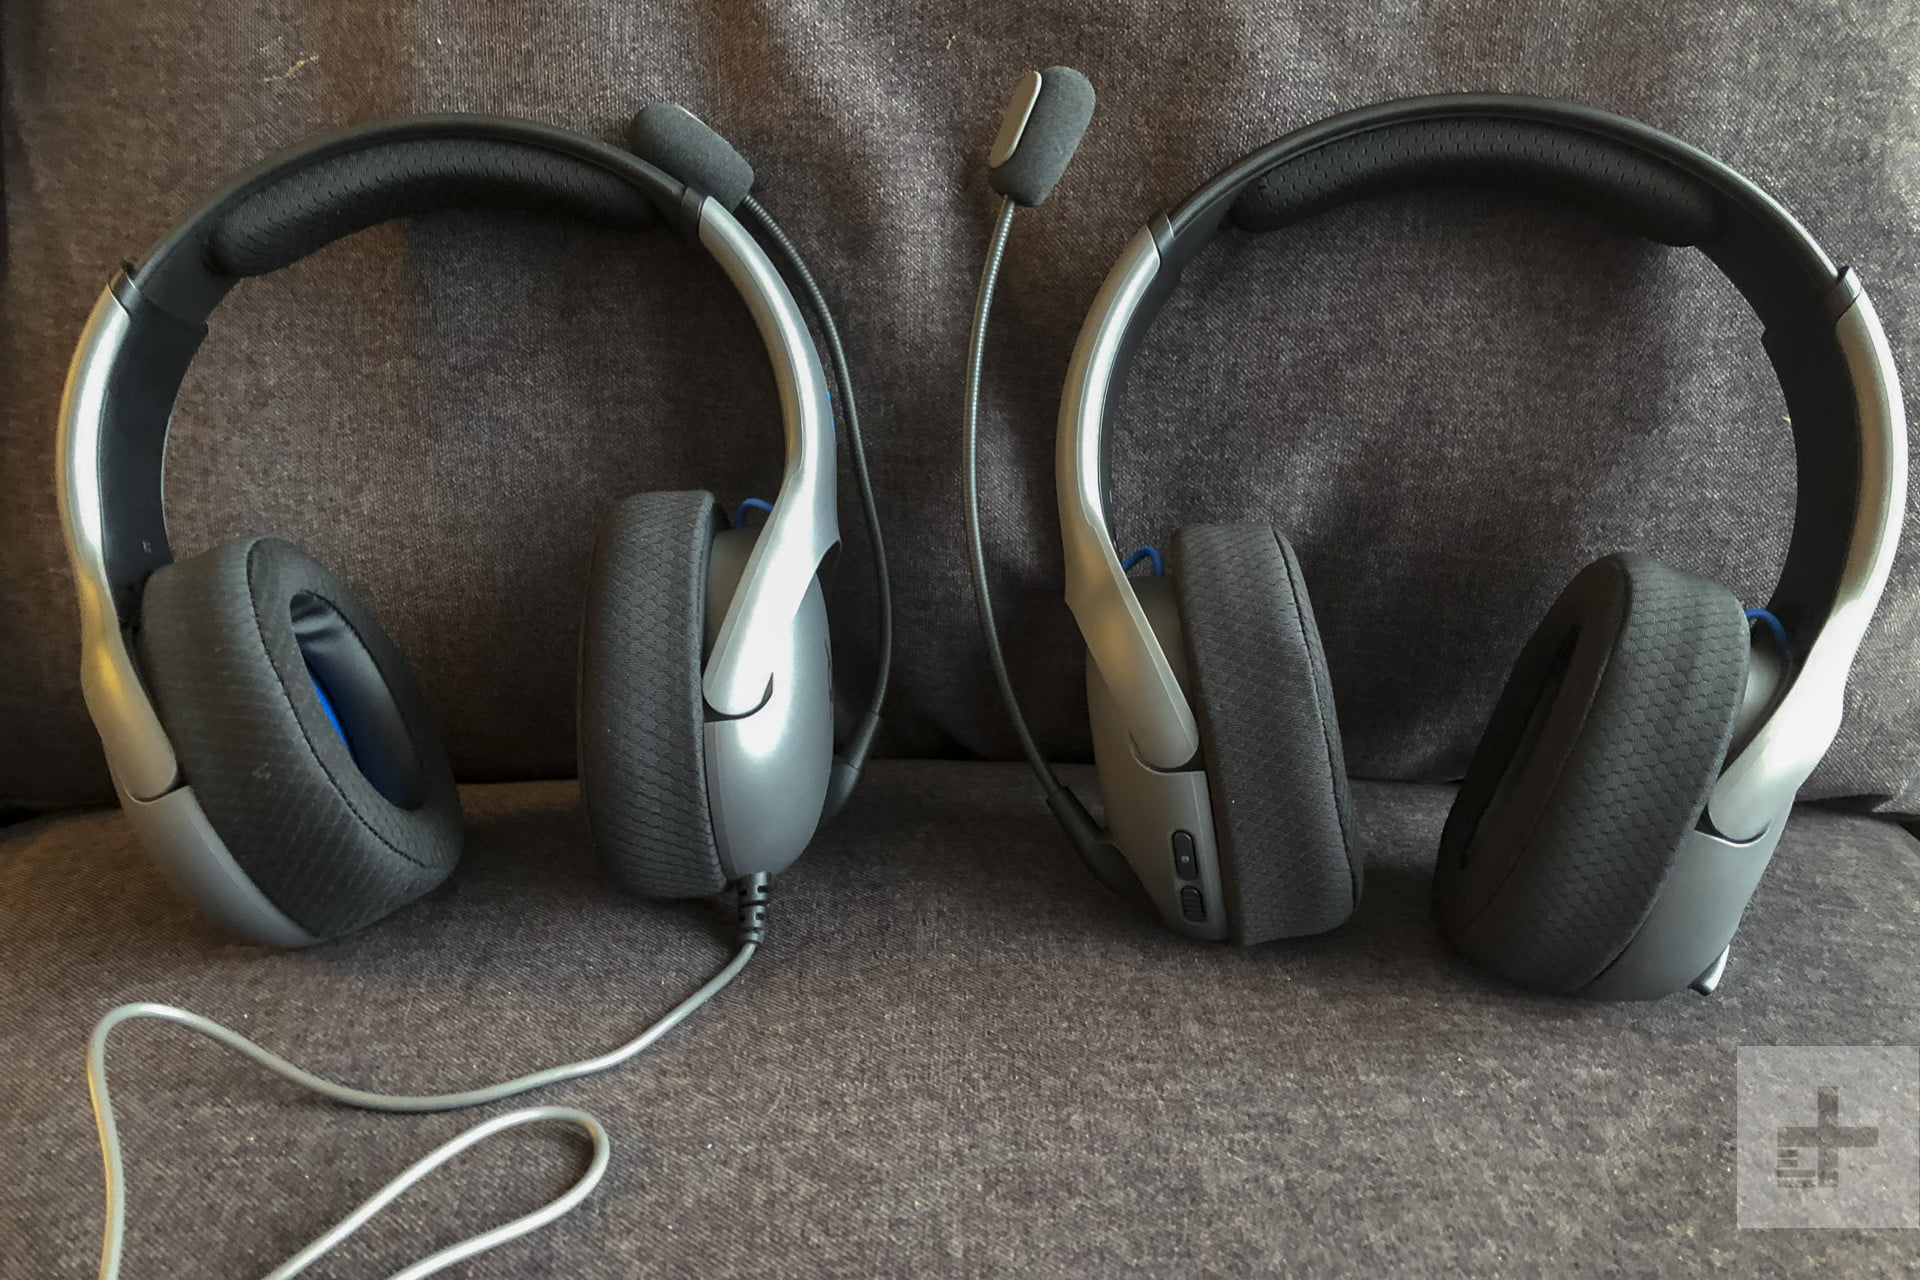 The PDP LVL 50 Headsets Prove Price Doesn't Always Equal